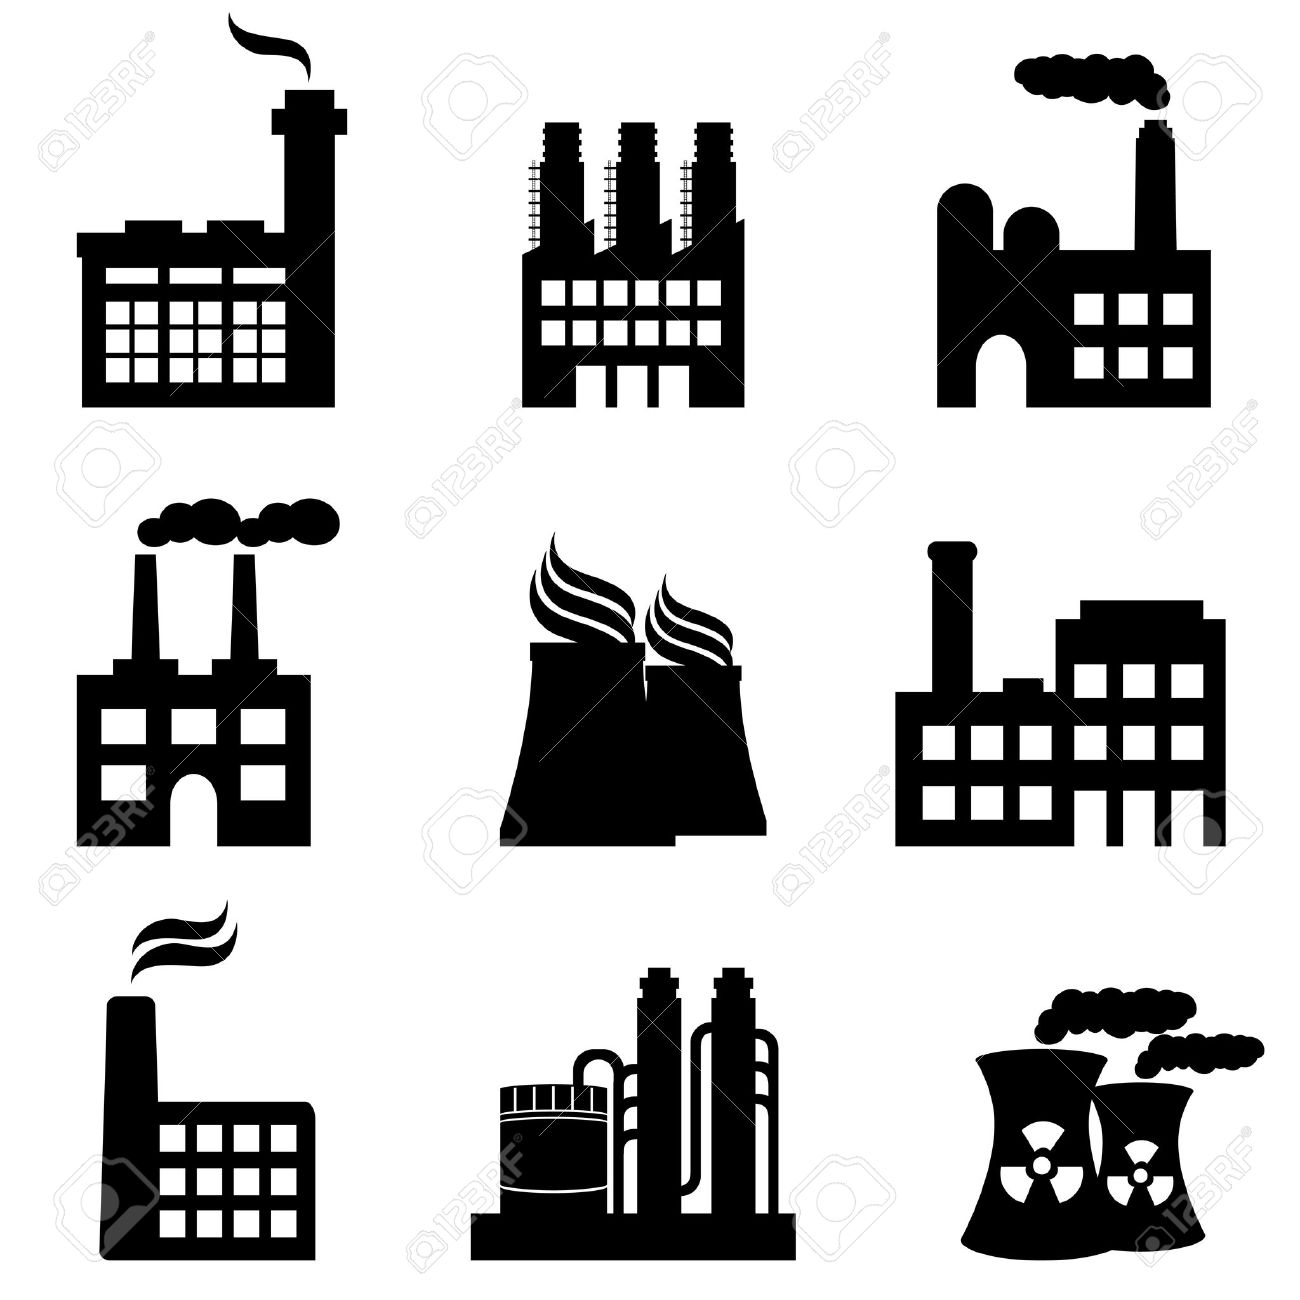 Industrial Plants Clipart